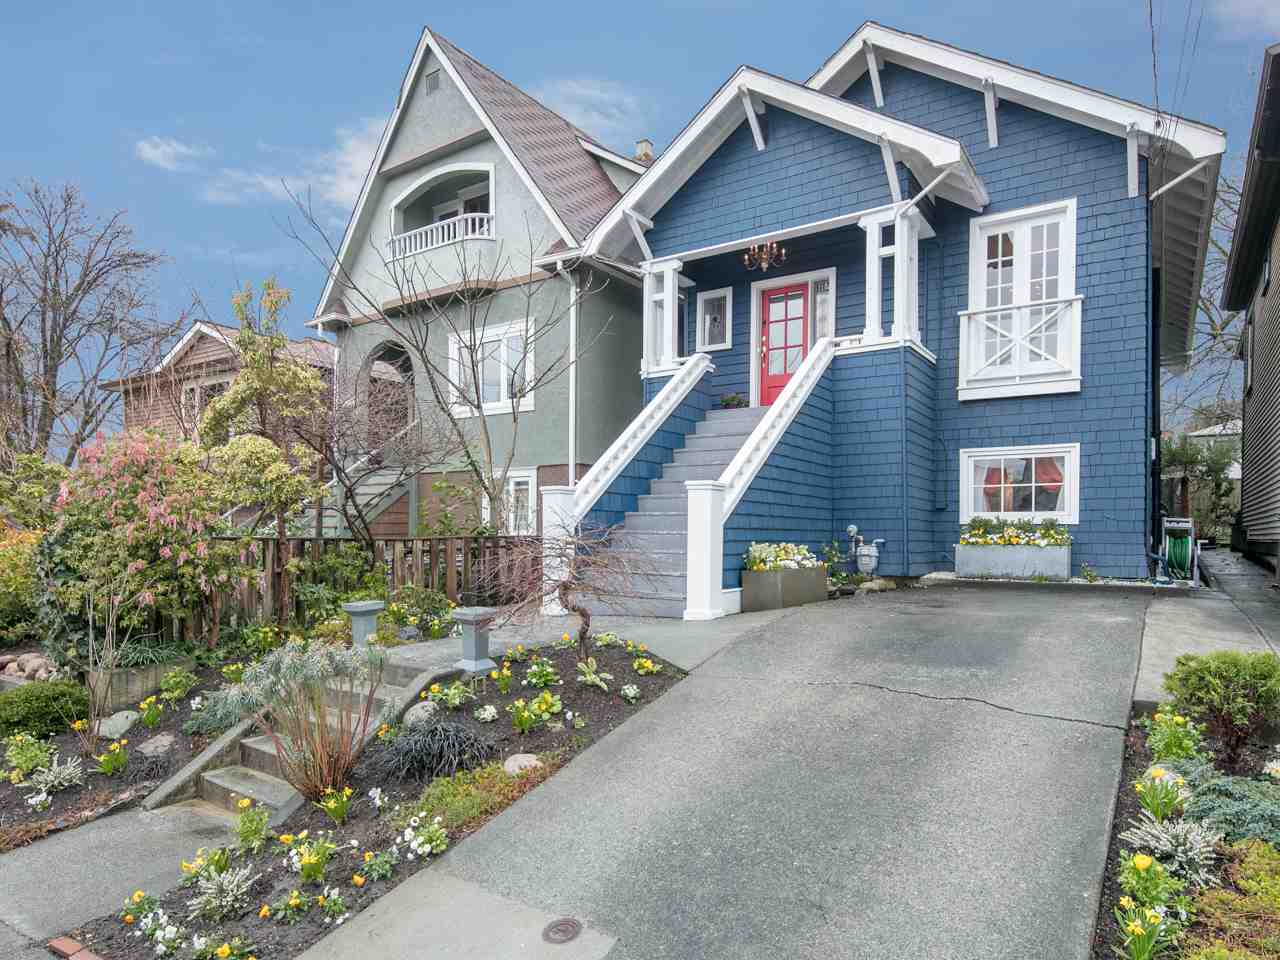 Photo 1: 1112 ROSE Street in Vancouver: Grandview VE House for sale (Vancouver East)  : MLS® # R2149737